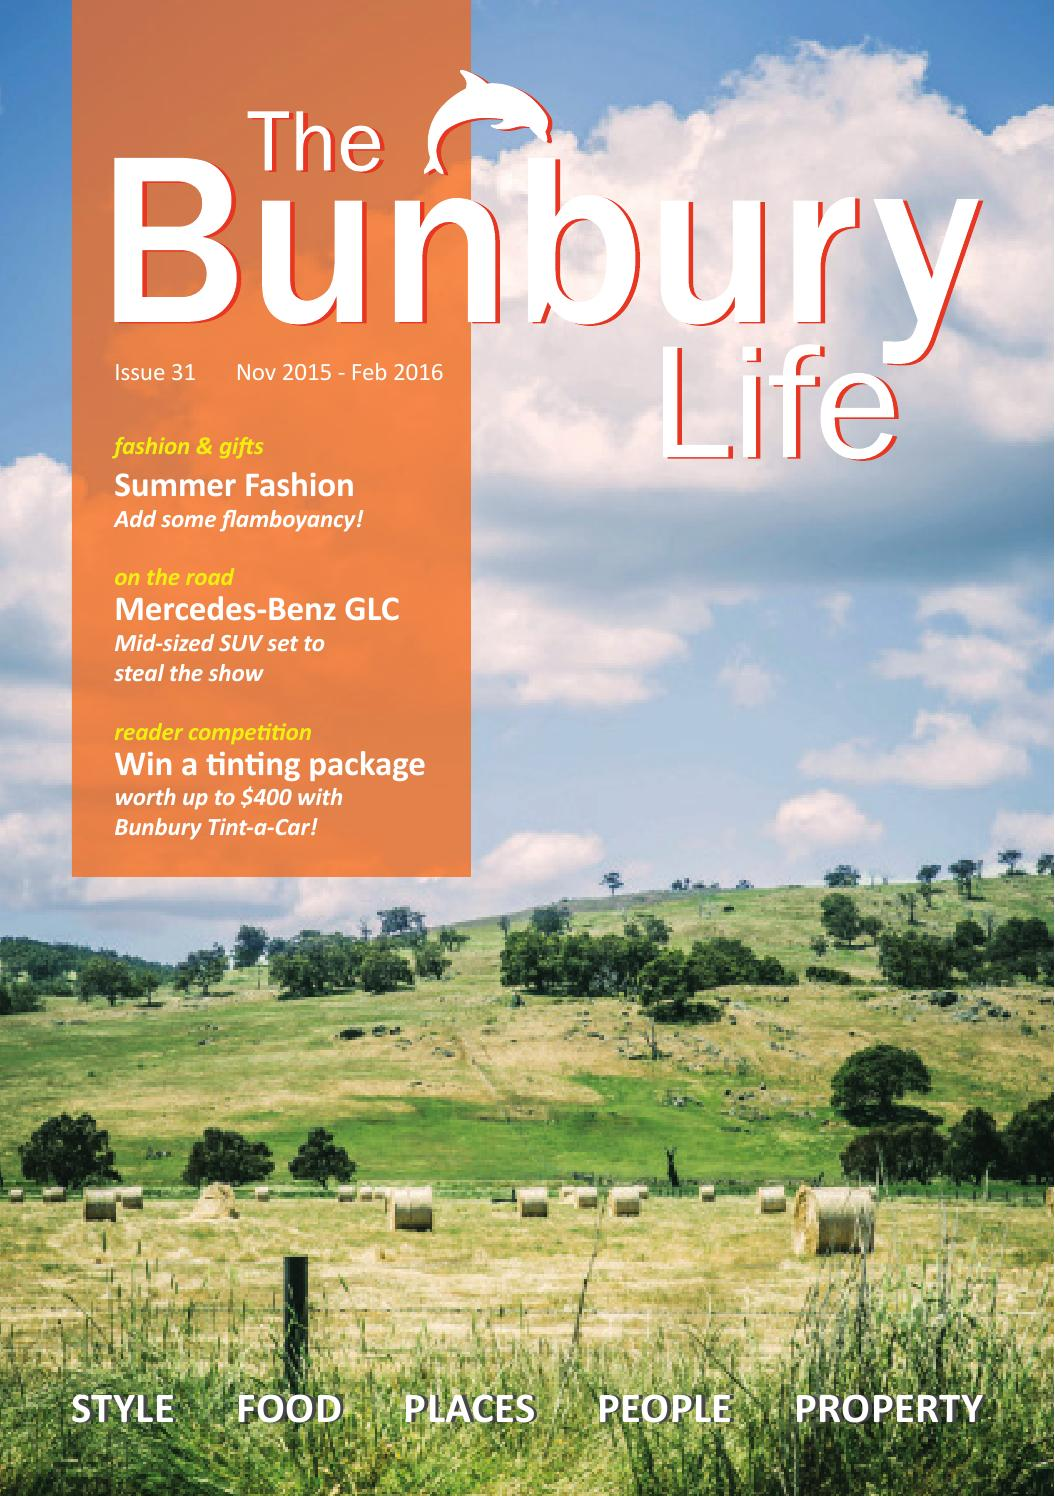 The Bunbury Life - Issue 31 by Blue Sky Media - issuu